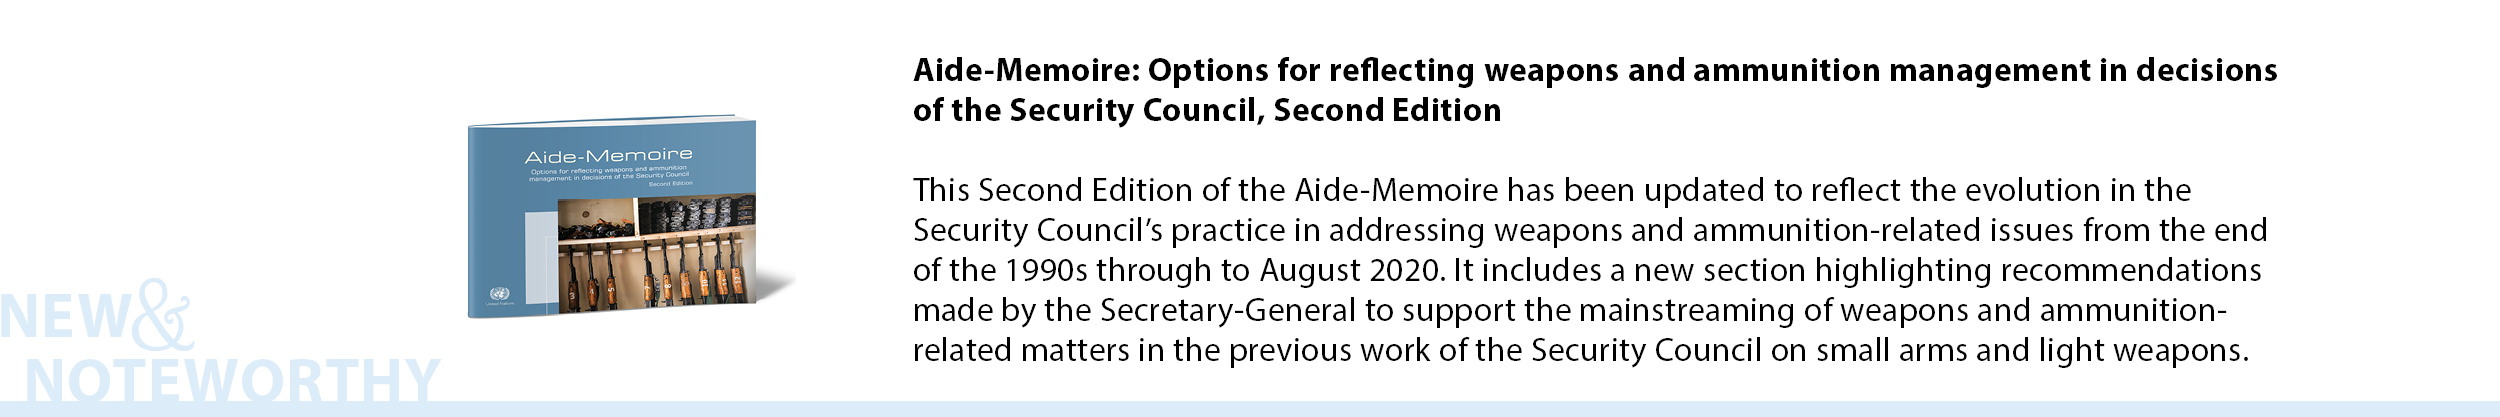 Aide-Memoire: Options for reflecting weapons and ammunition management in decisions of the Security Council, Second Edition  This Second Edition of the Aide-Memoire has been updated to reflect the evolution in the Security Council's practice in addressing weapons and ammunition-related issues from the end of the 1990s through to August 2020. It includes a new section highlighting recommendations made by the Secretary-General to support the mainstreaming of weapons and ammunition-related matters in the previous work of the Security Council on small arms and light weapons.